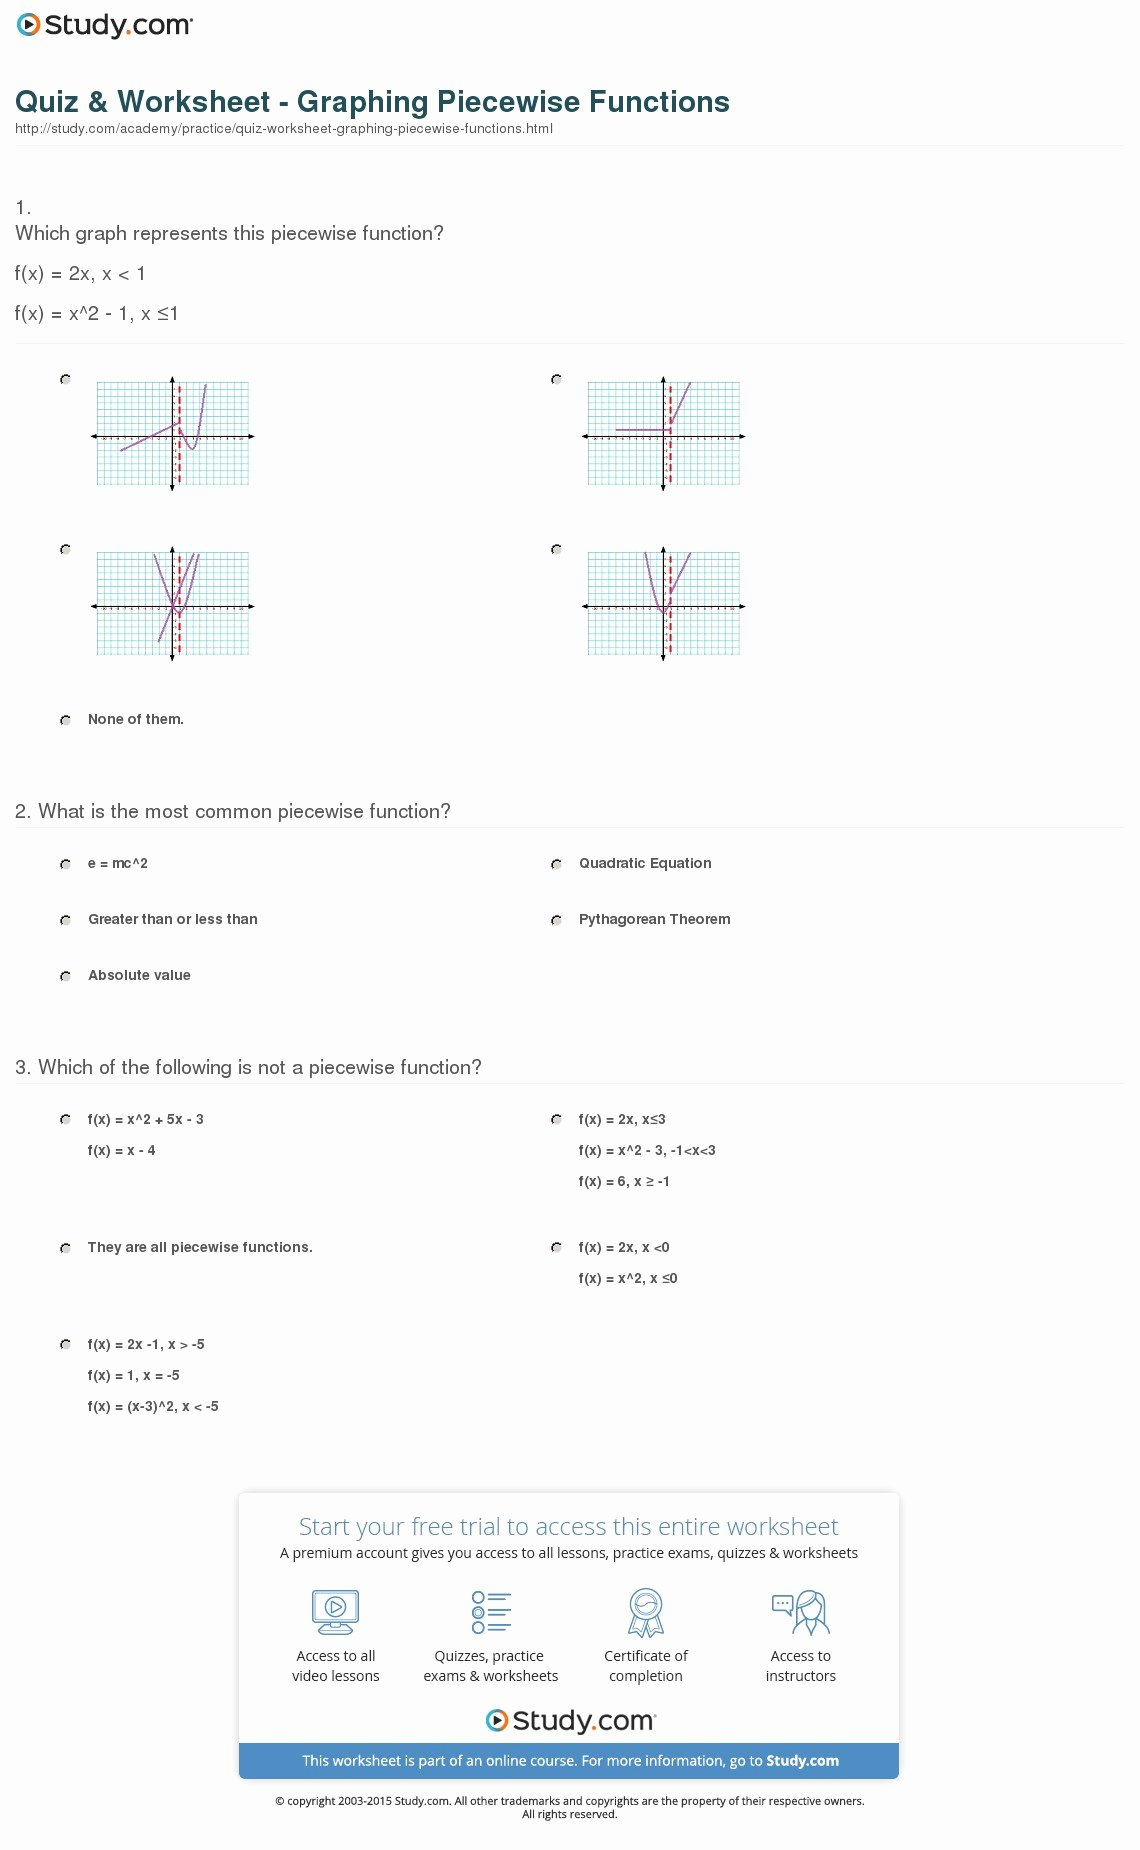 Piecewise Functions Worksheet with Answers Fresh Quiz & Worksheet Graphing Piecewise Functions